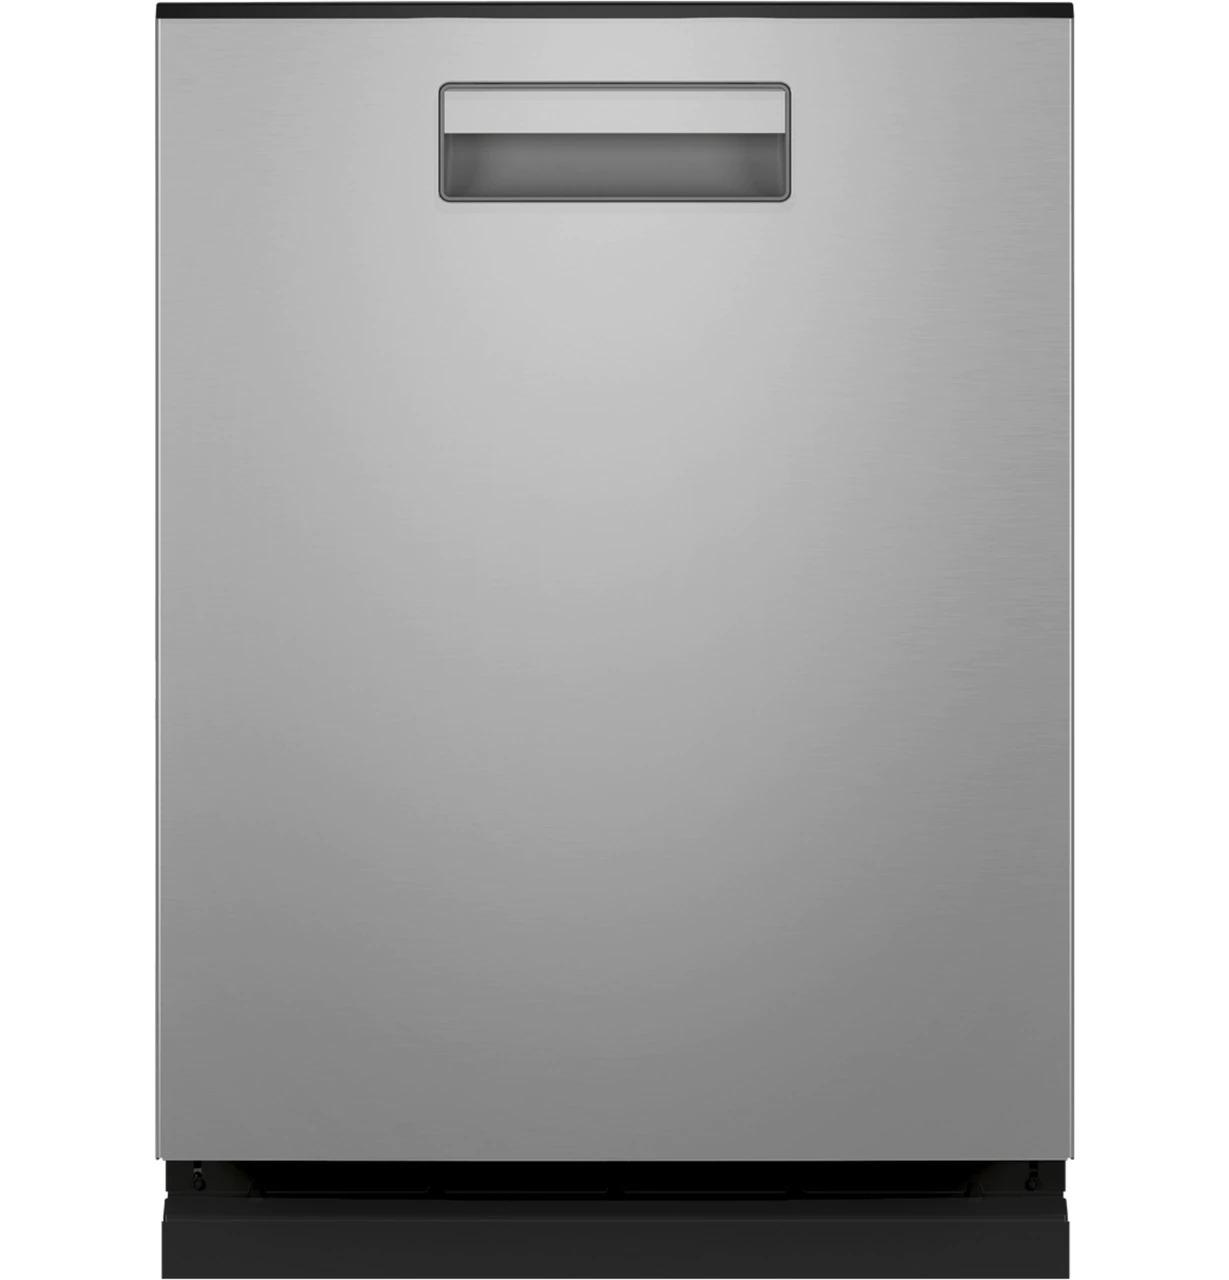 HaierHaier Smart Top Control With Stainless Steel Interior Dishwasher With Sanitize Cycle